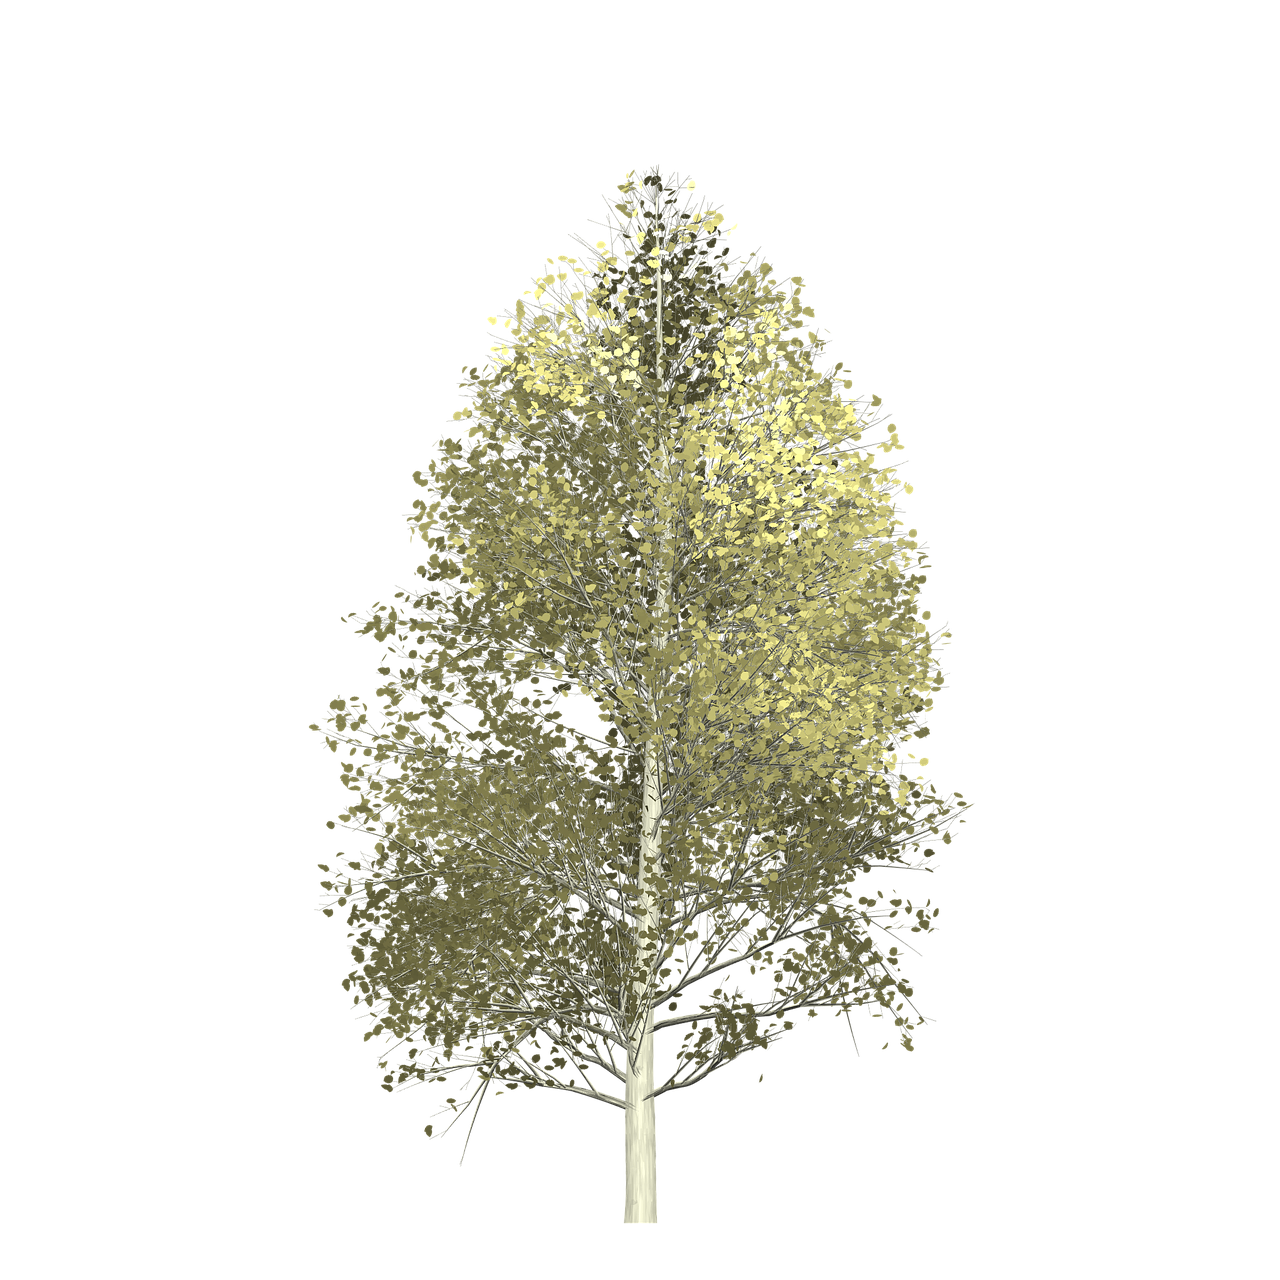 Forest, Aspen, Tree, Painted Tree, Nature forest, aspen